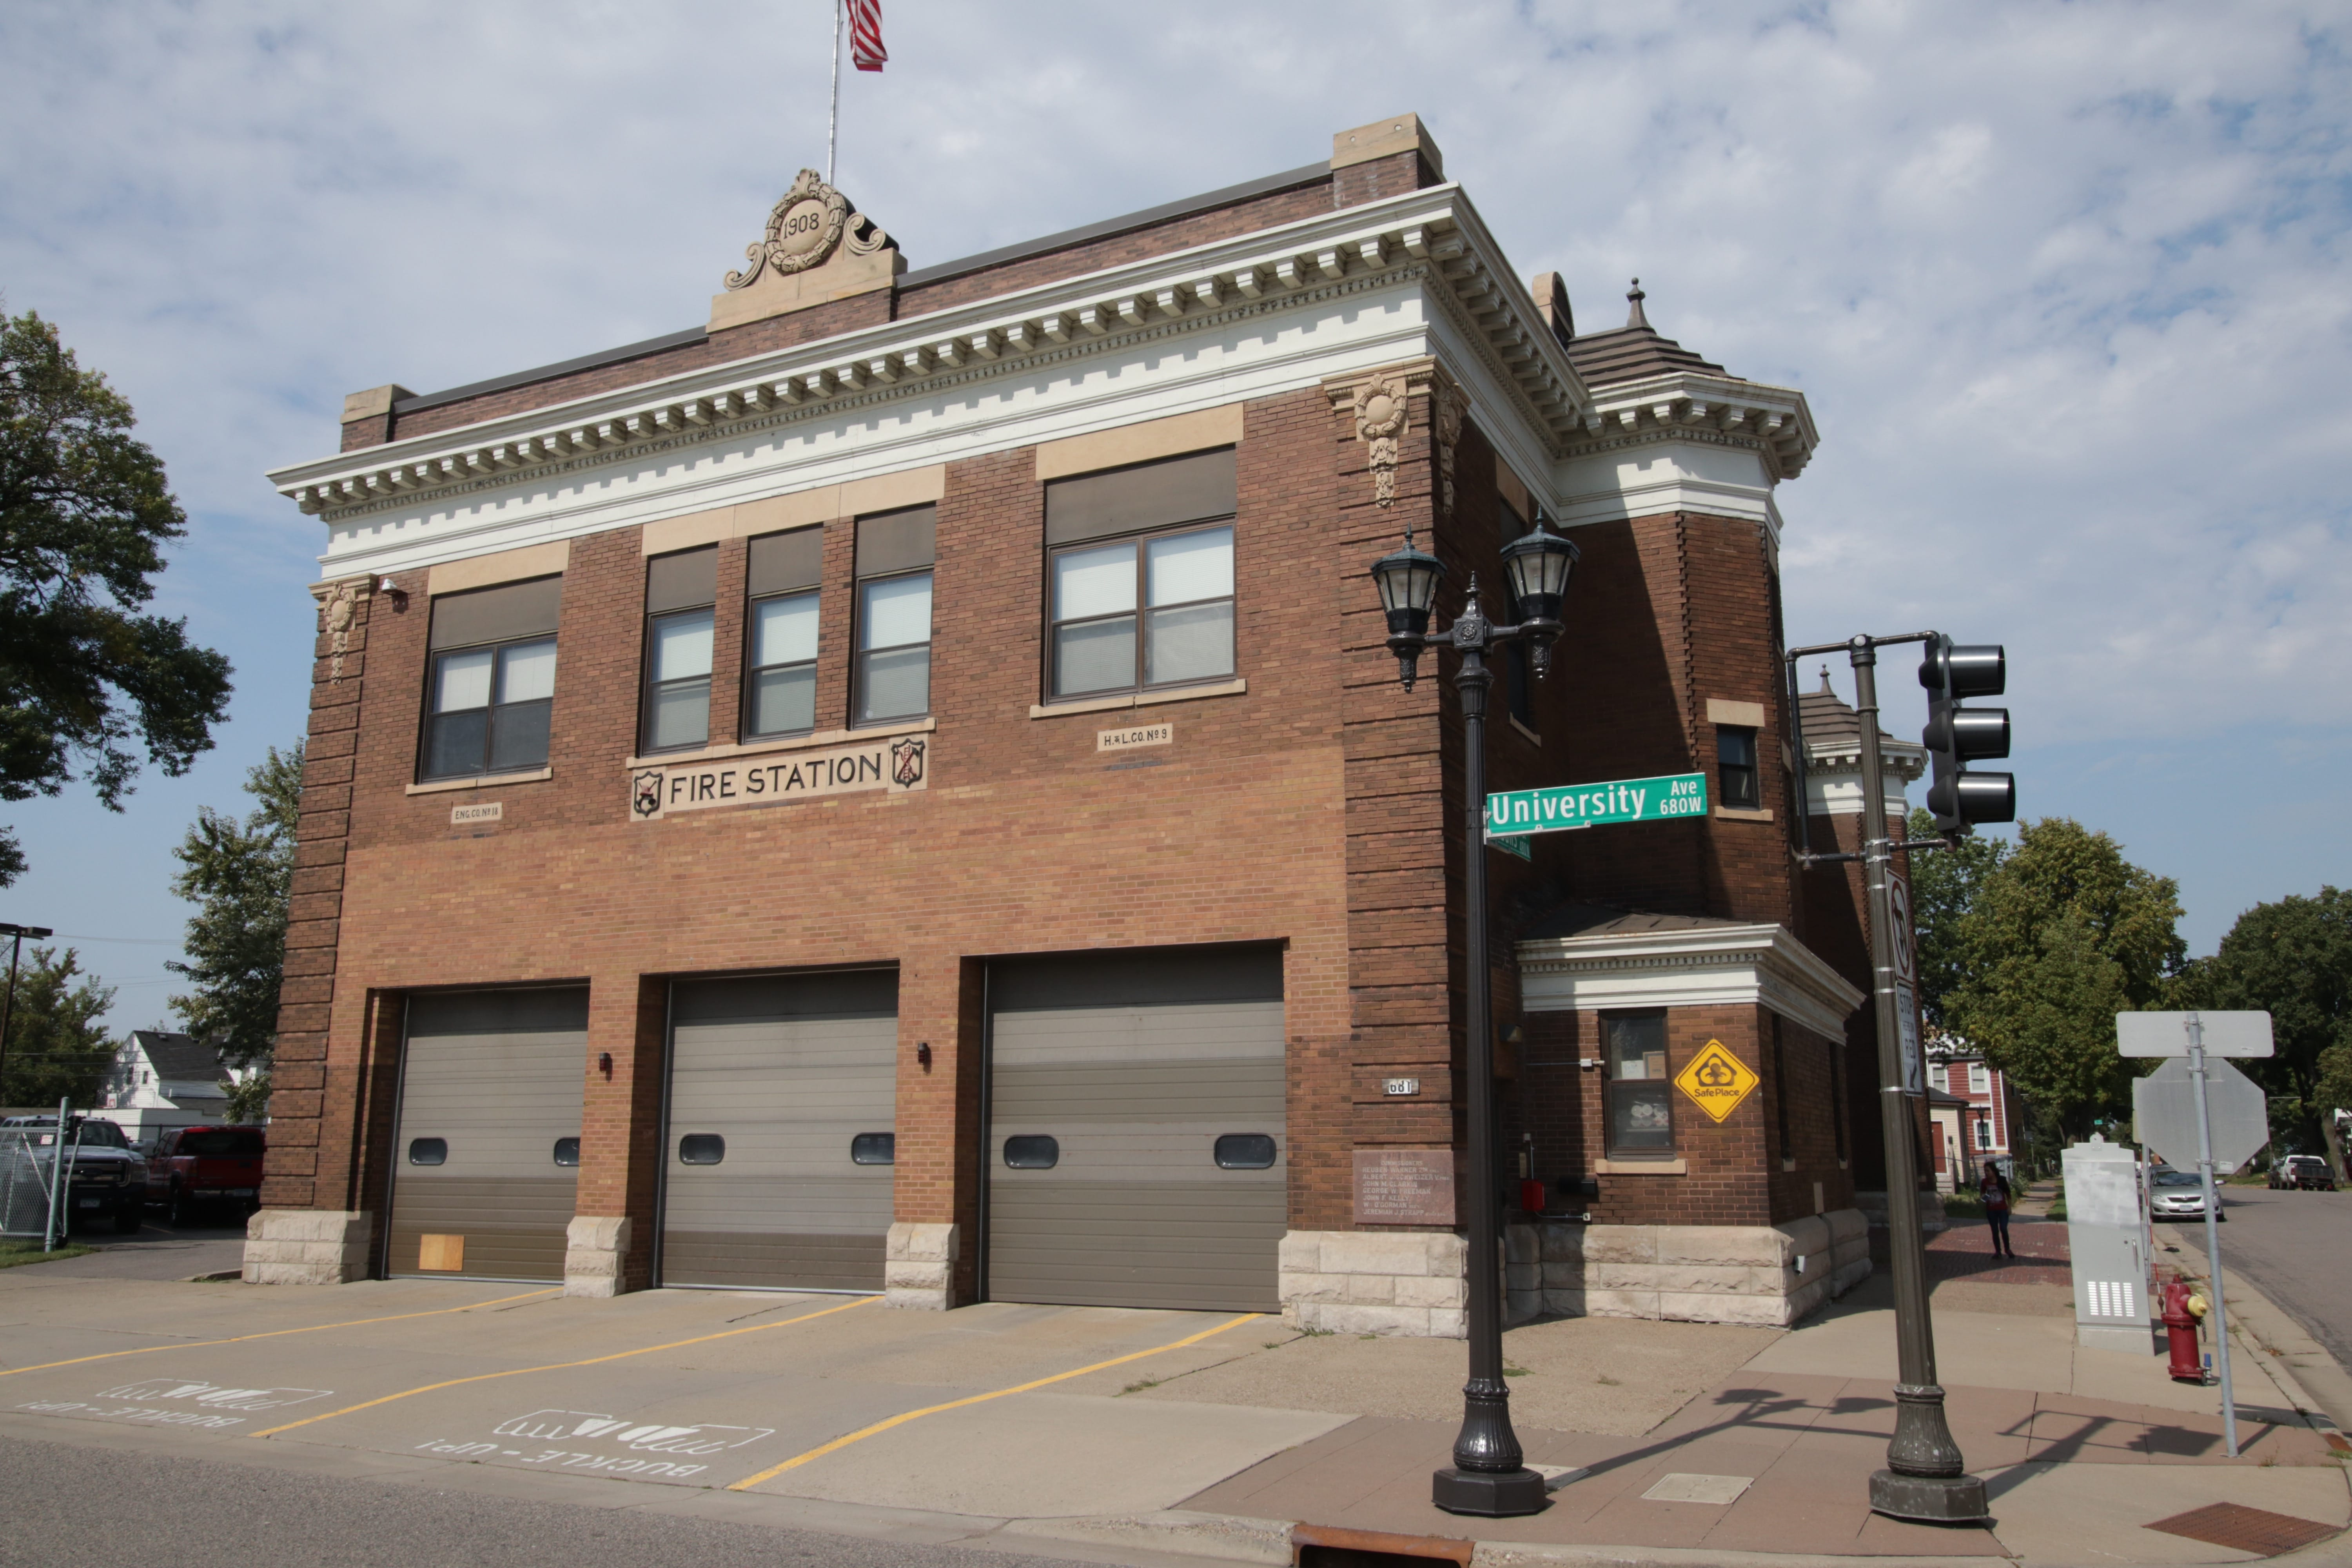 Station 18 at University and St. Albans is the city's longest continuously operating station.